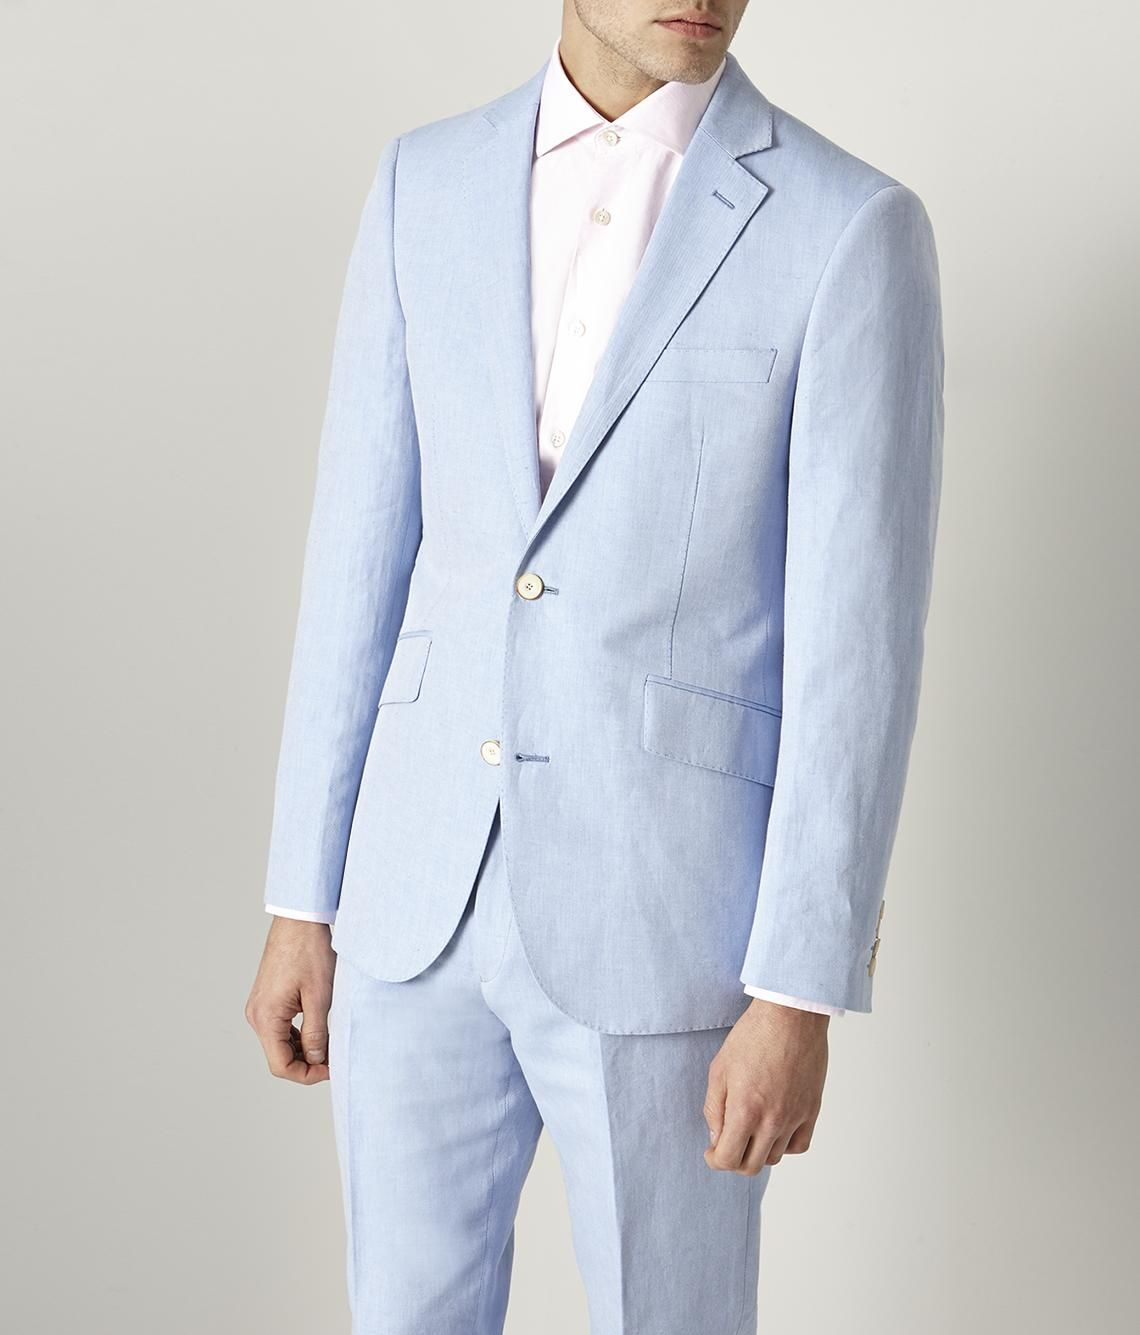 Nice Suit From Austin Reed Only 159 Http Www Austinreed Com Sb2 Light Blue Linen Cotton Twill Suit Bamms50064 1 Suits Cool Suits Cotton Suit